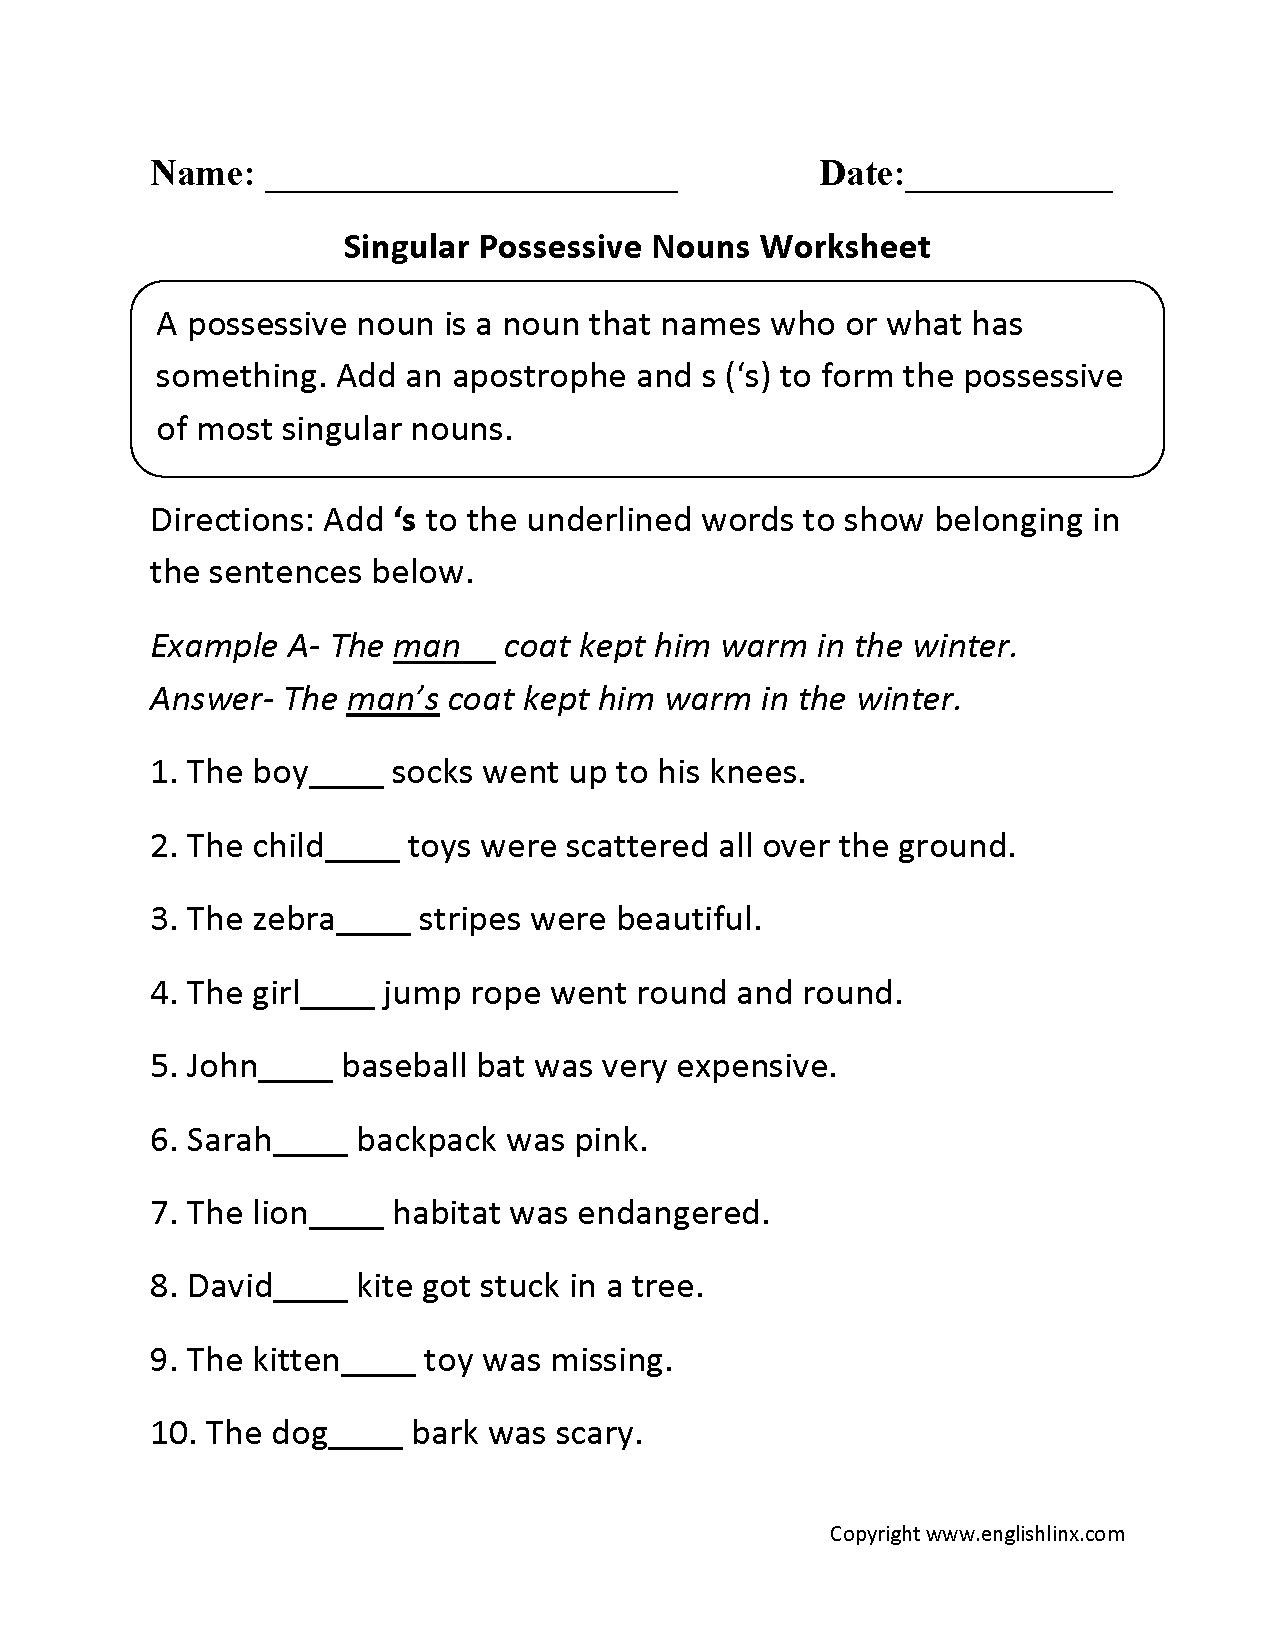 Possessive Pronouns Worksheet 5th Grade 5th Grade English Worksheets Nouns